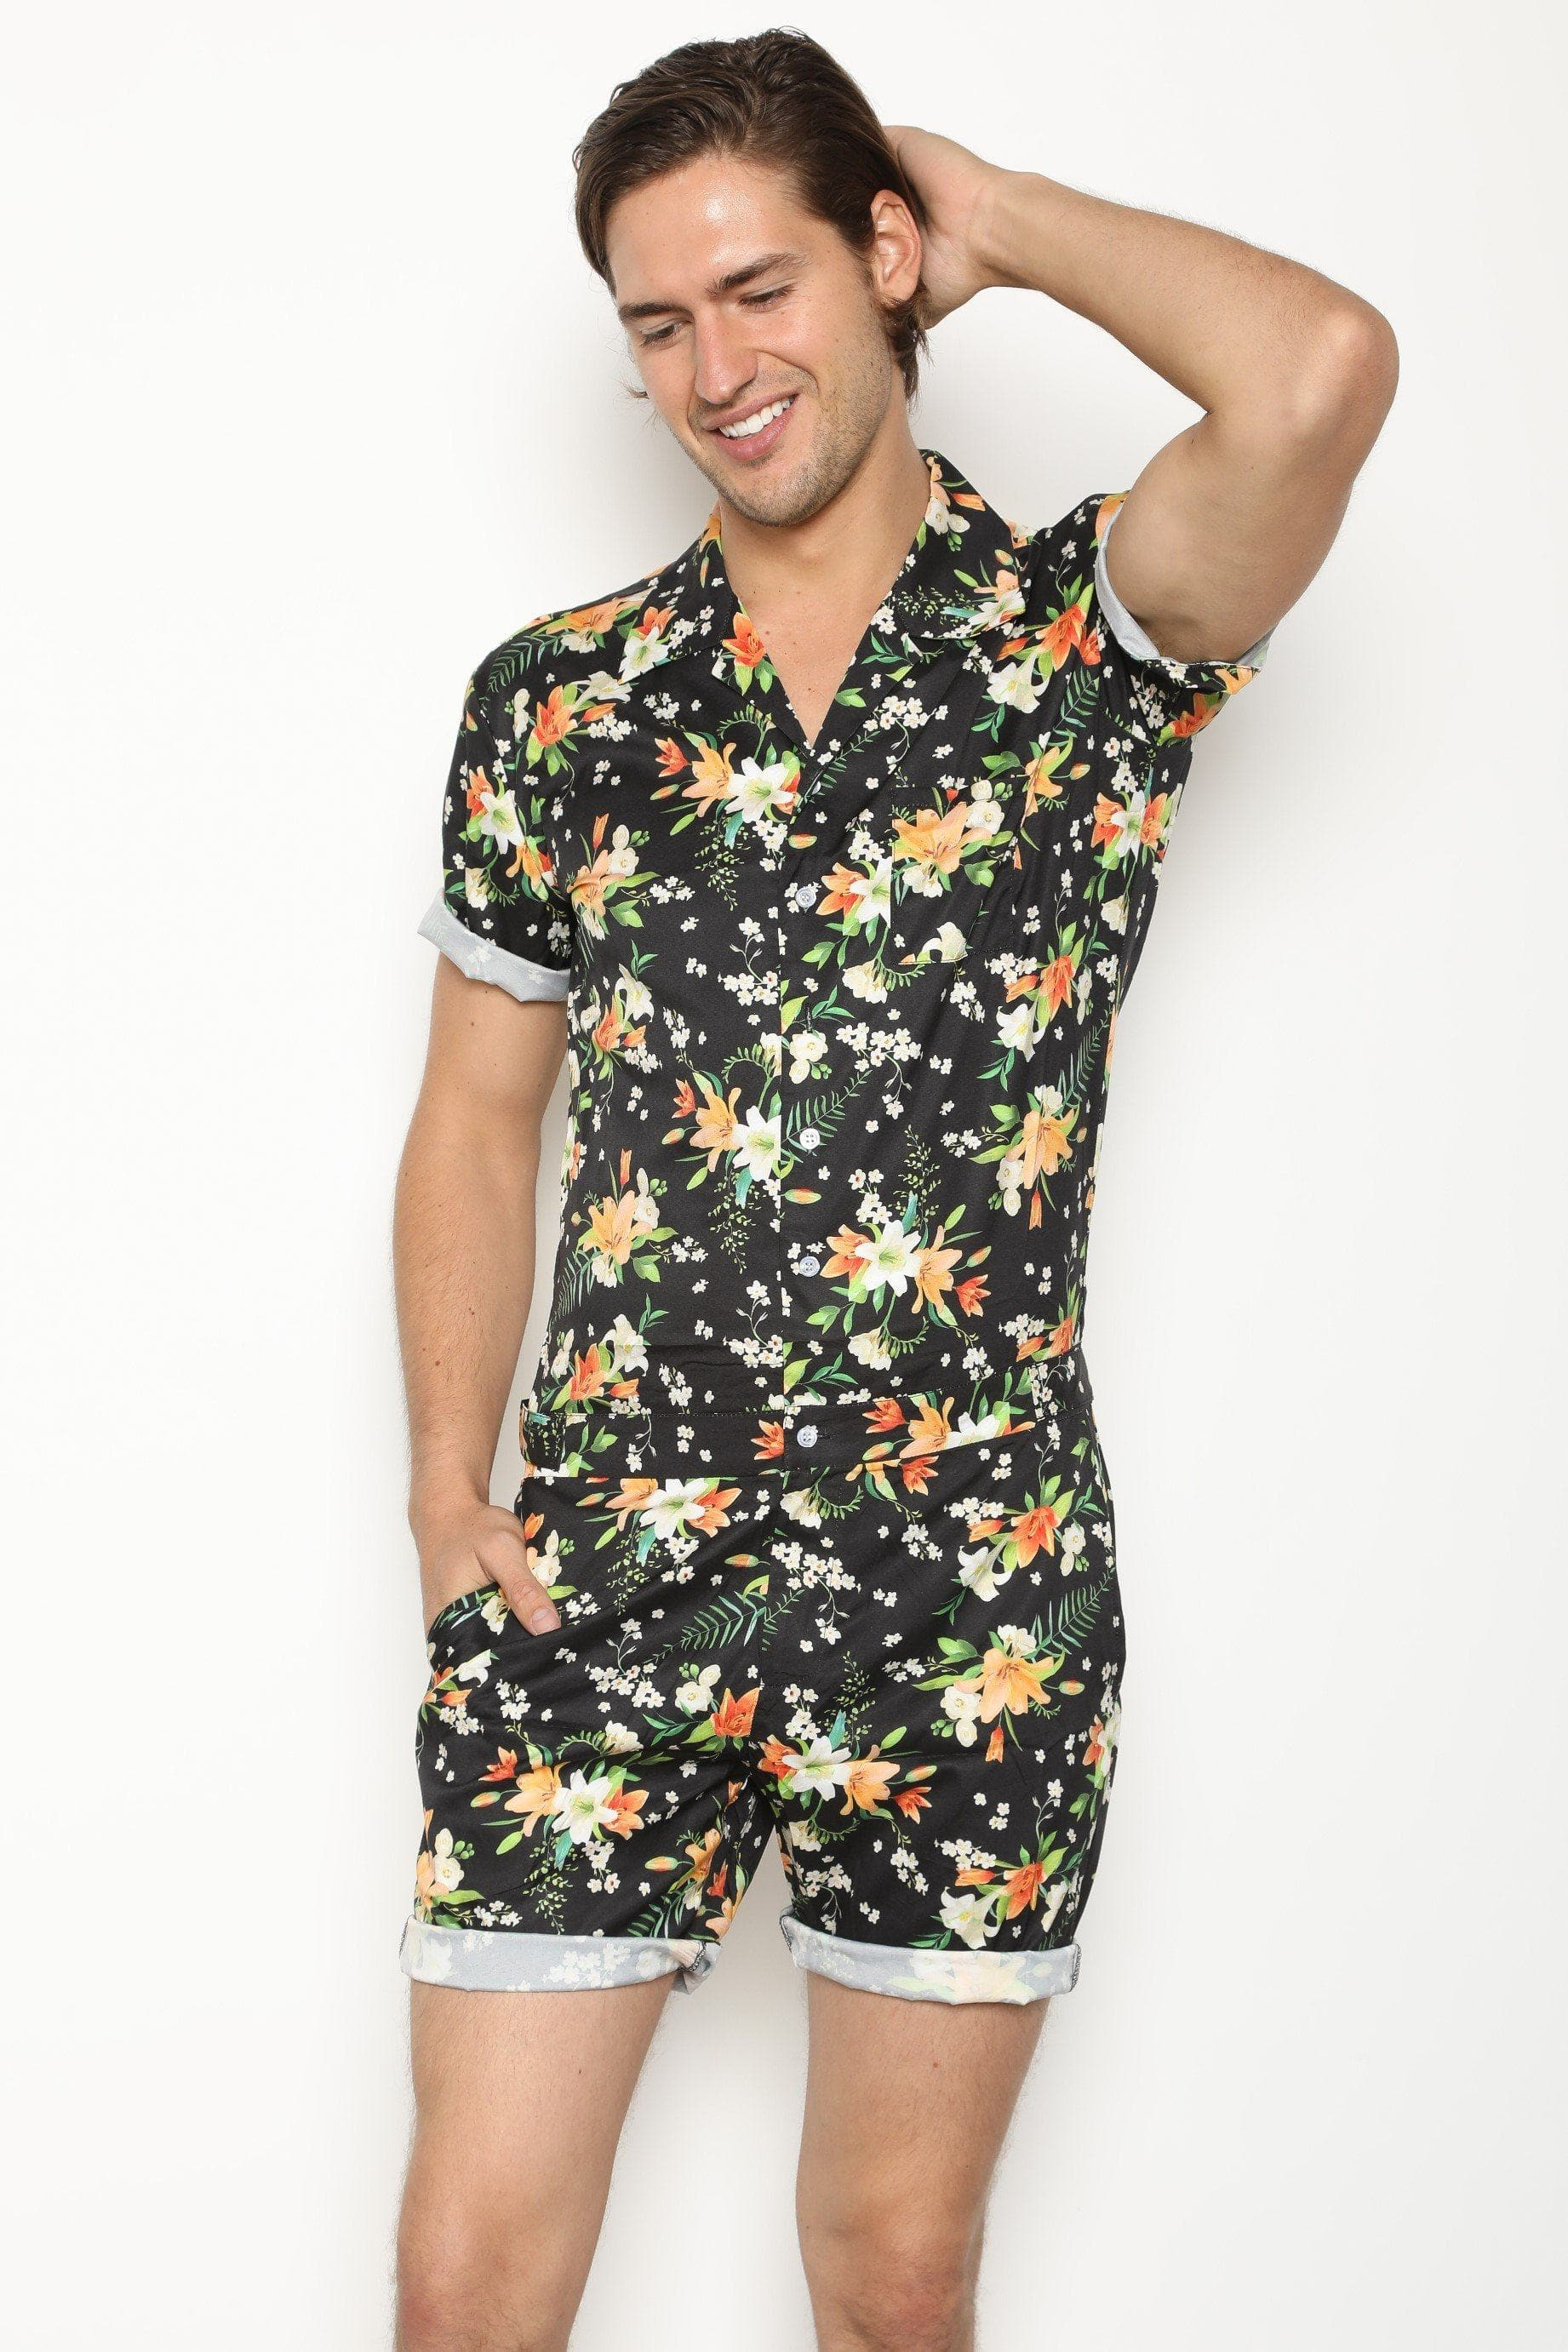 Tropical Black (Pre Order) - RomperJack, Mens Romper - Male Romper